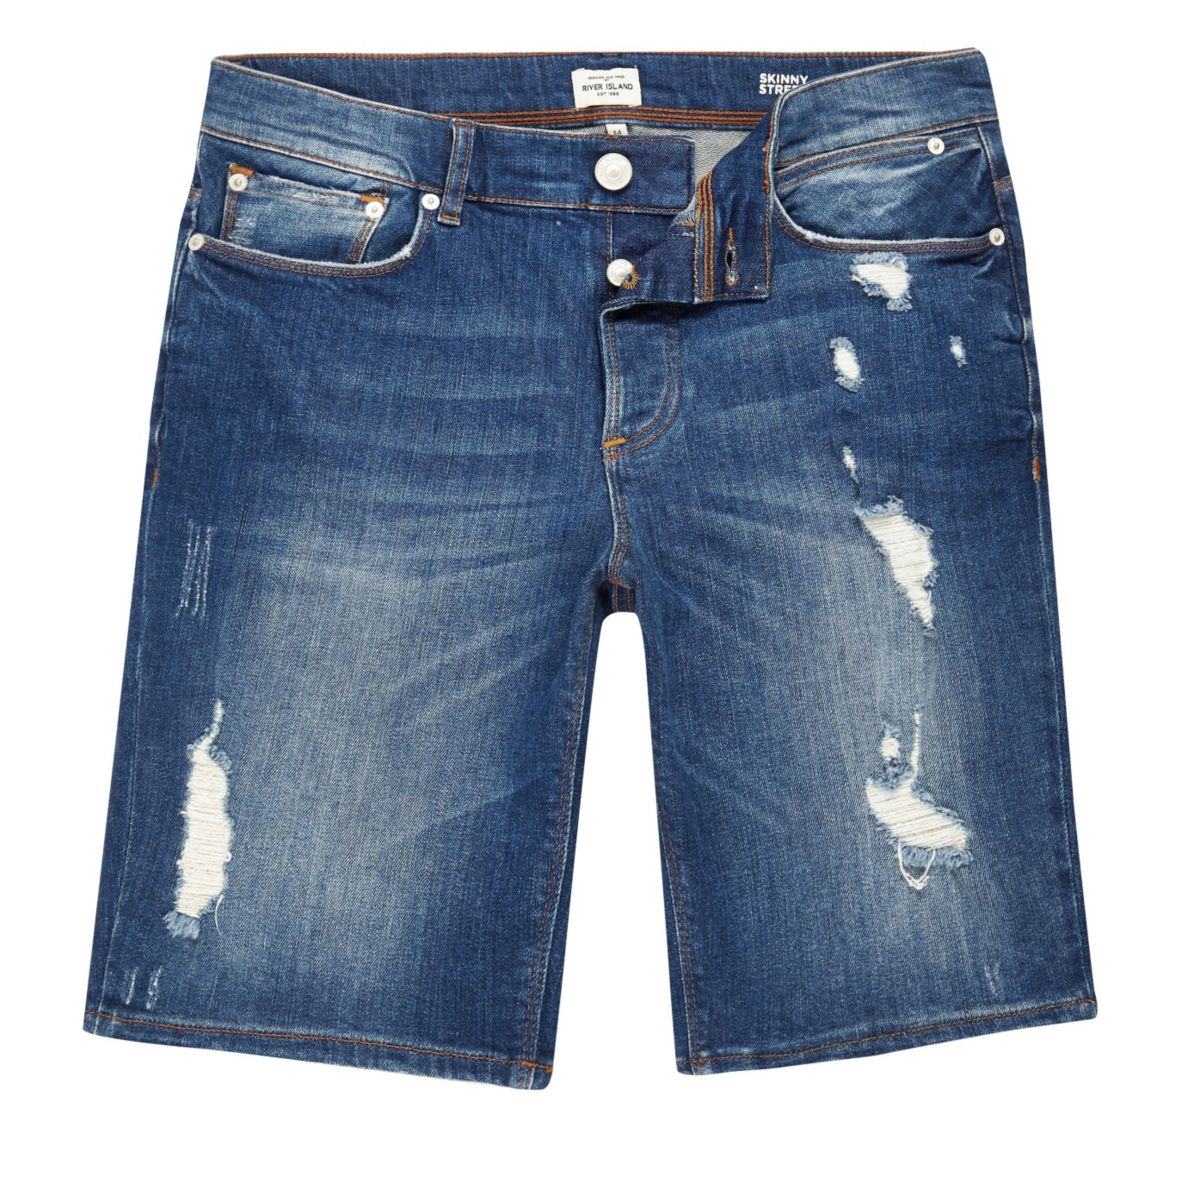 Blue wash distressed slim fit denim shorts